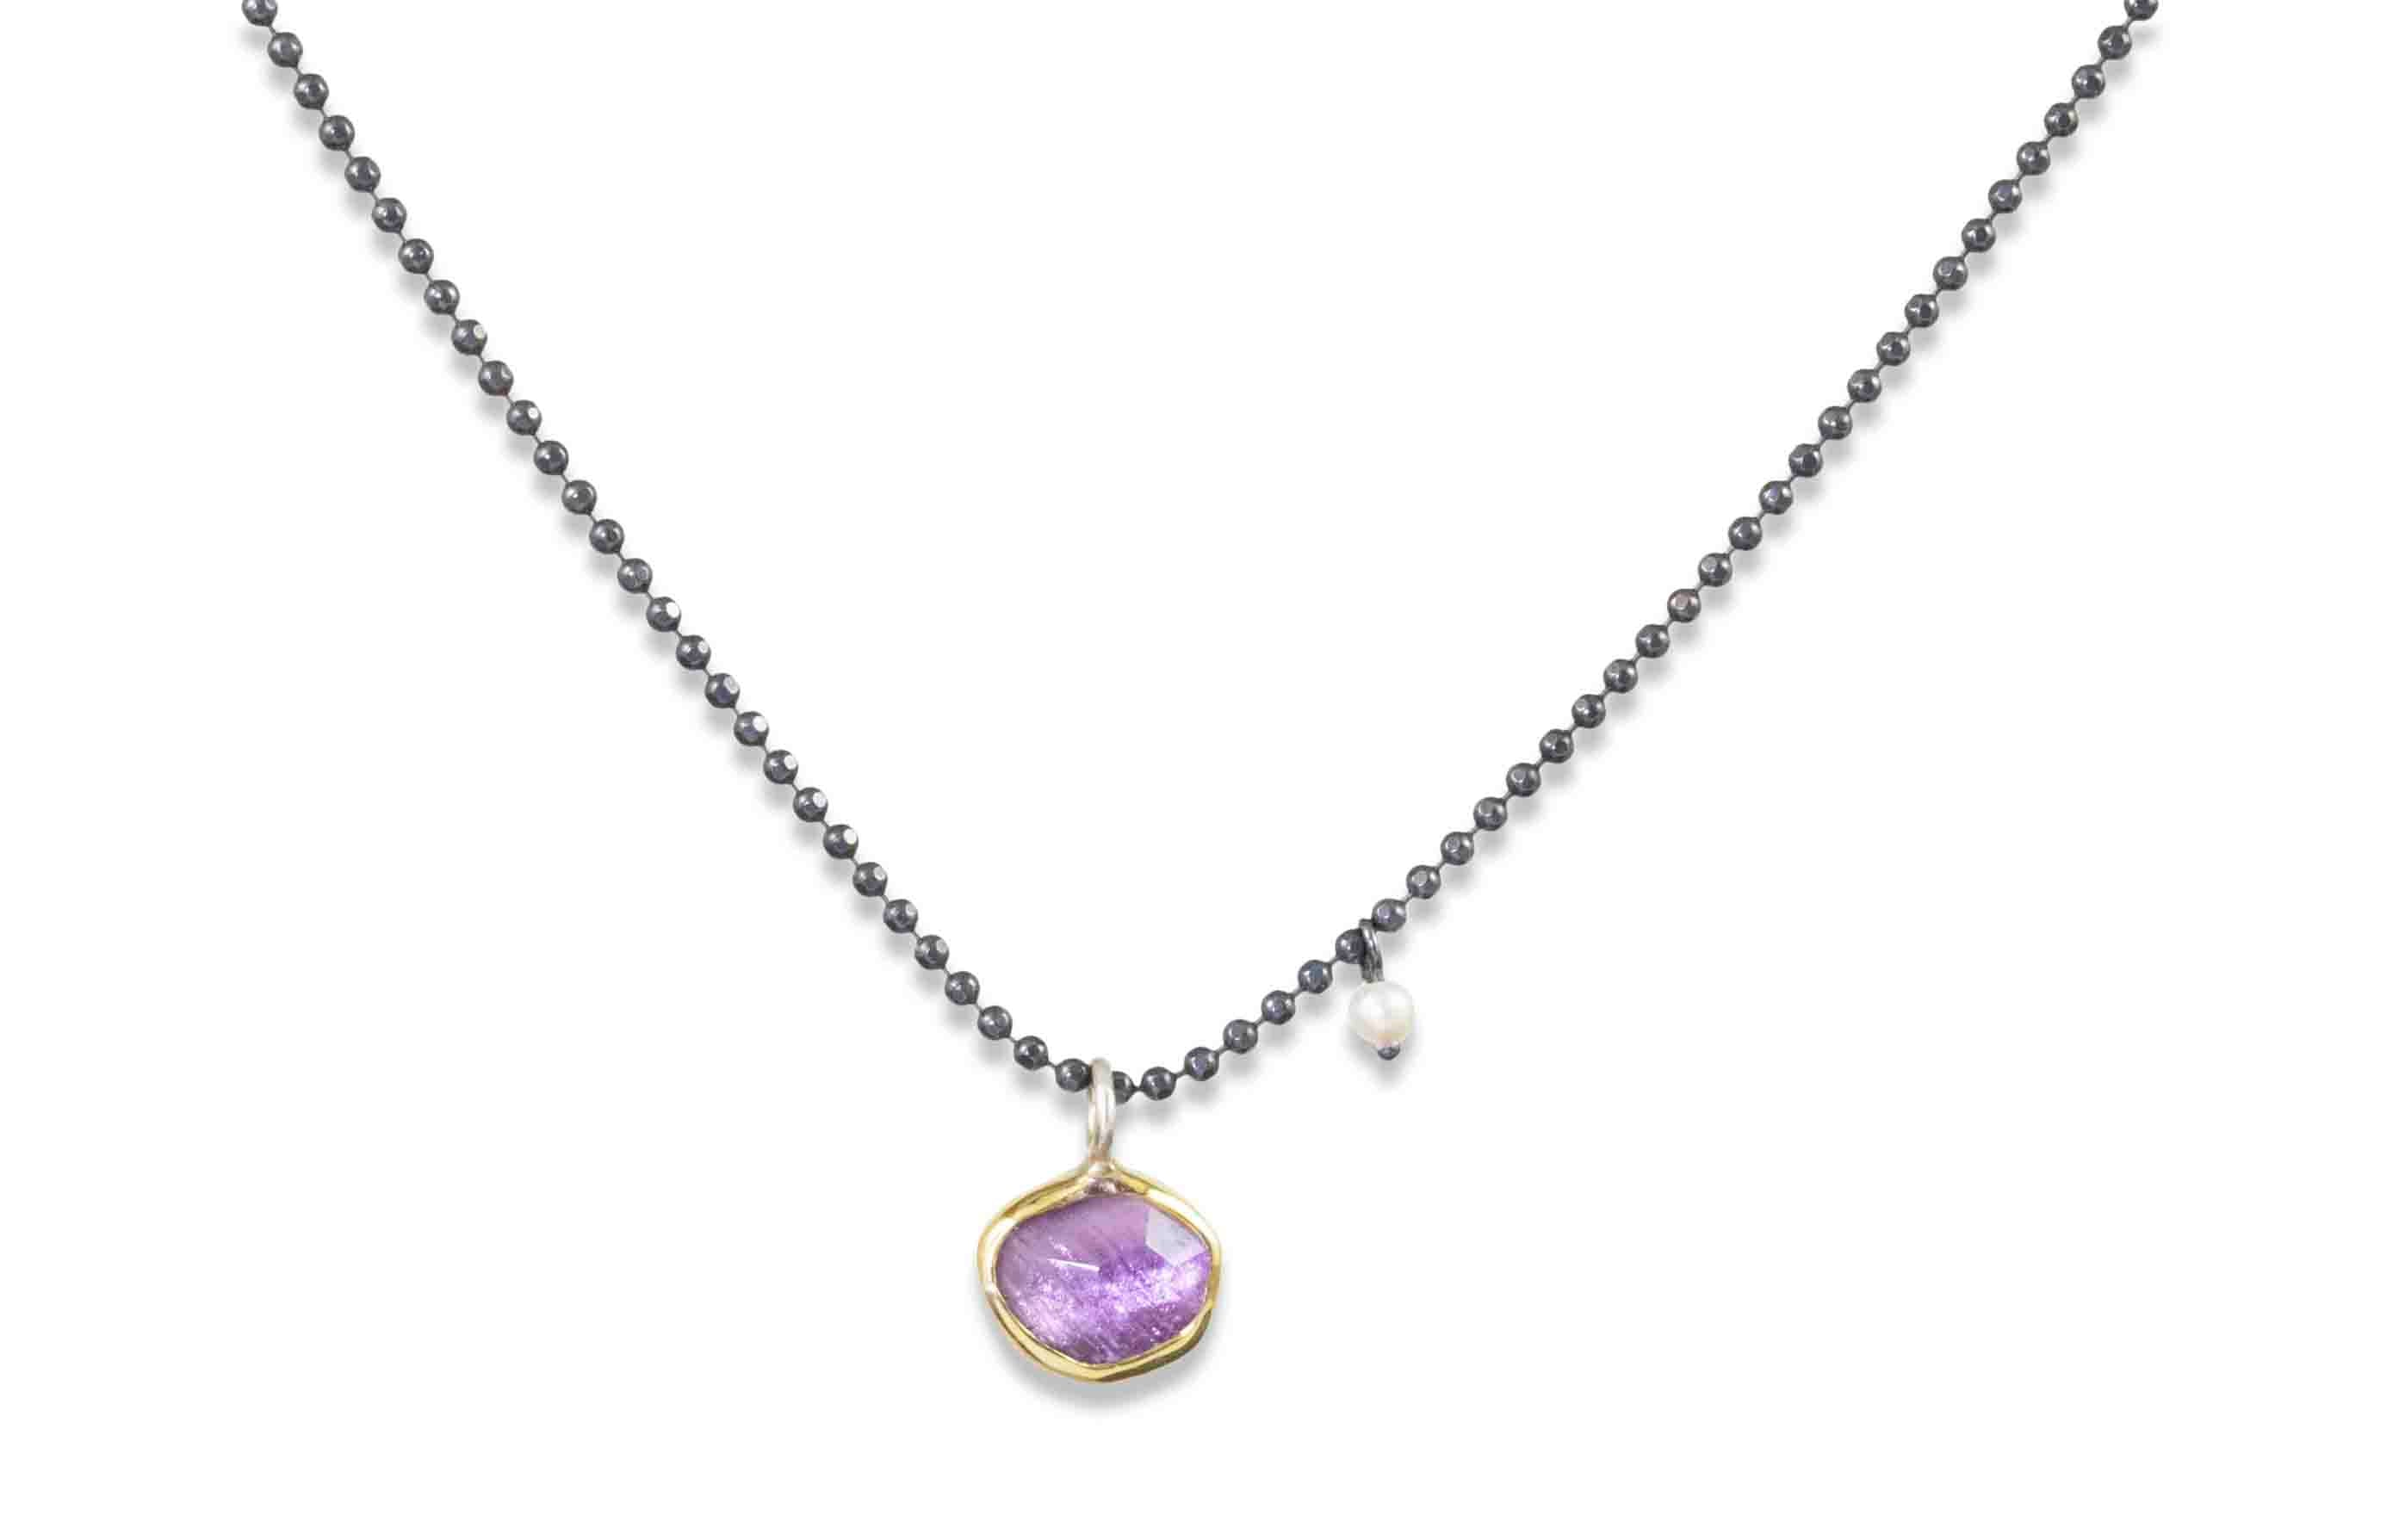 Amethyst and Seed Pearl Necklace